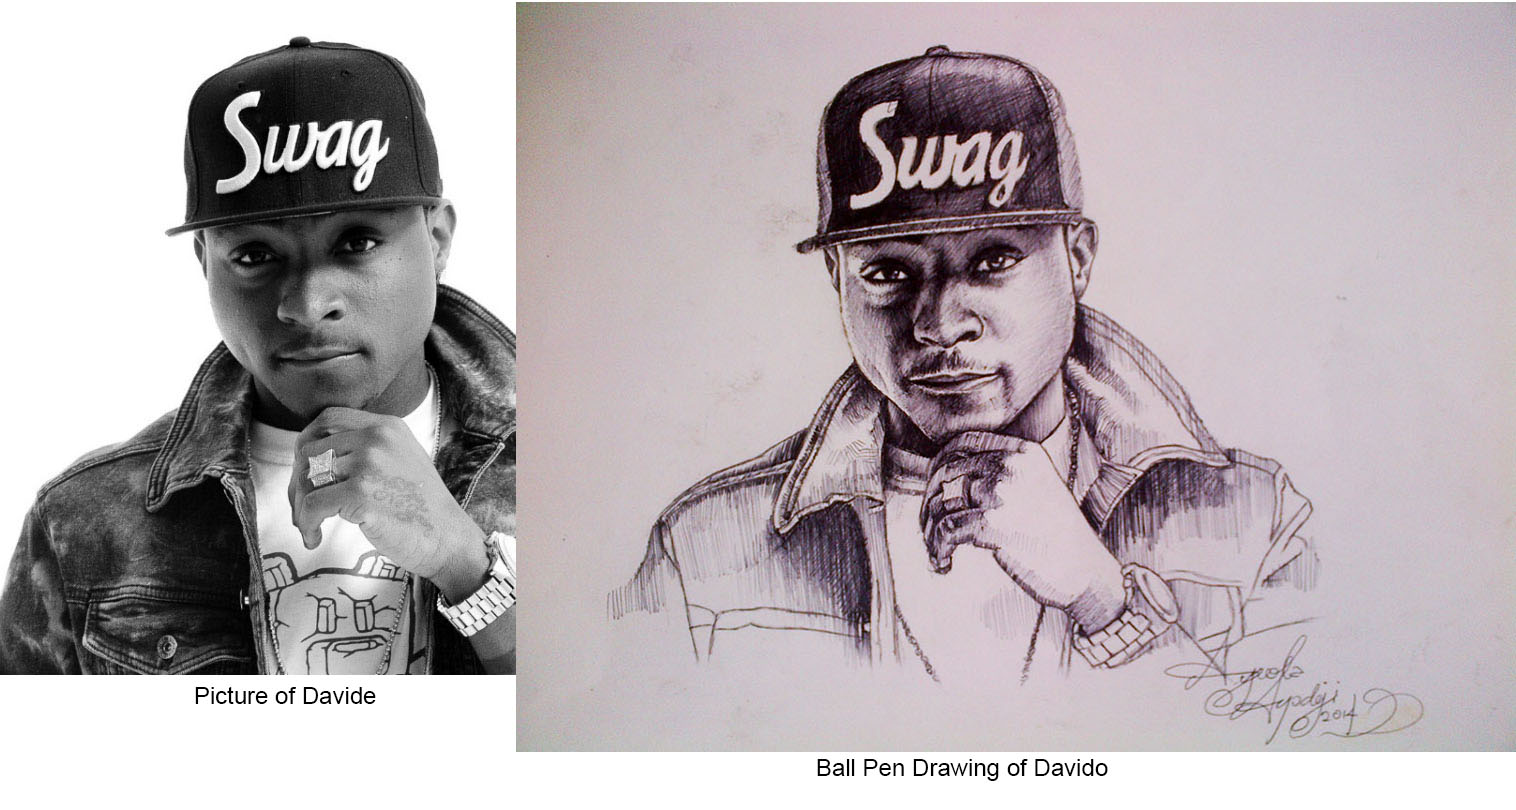 Ball pen drawing of davido done by ayeola ayodeji abiodun popular nigerian artist